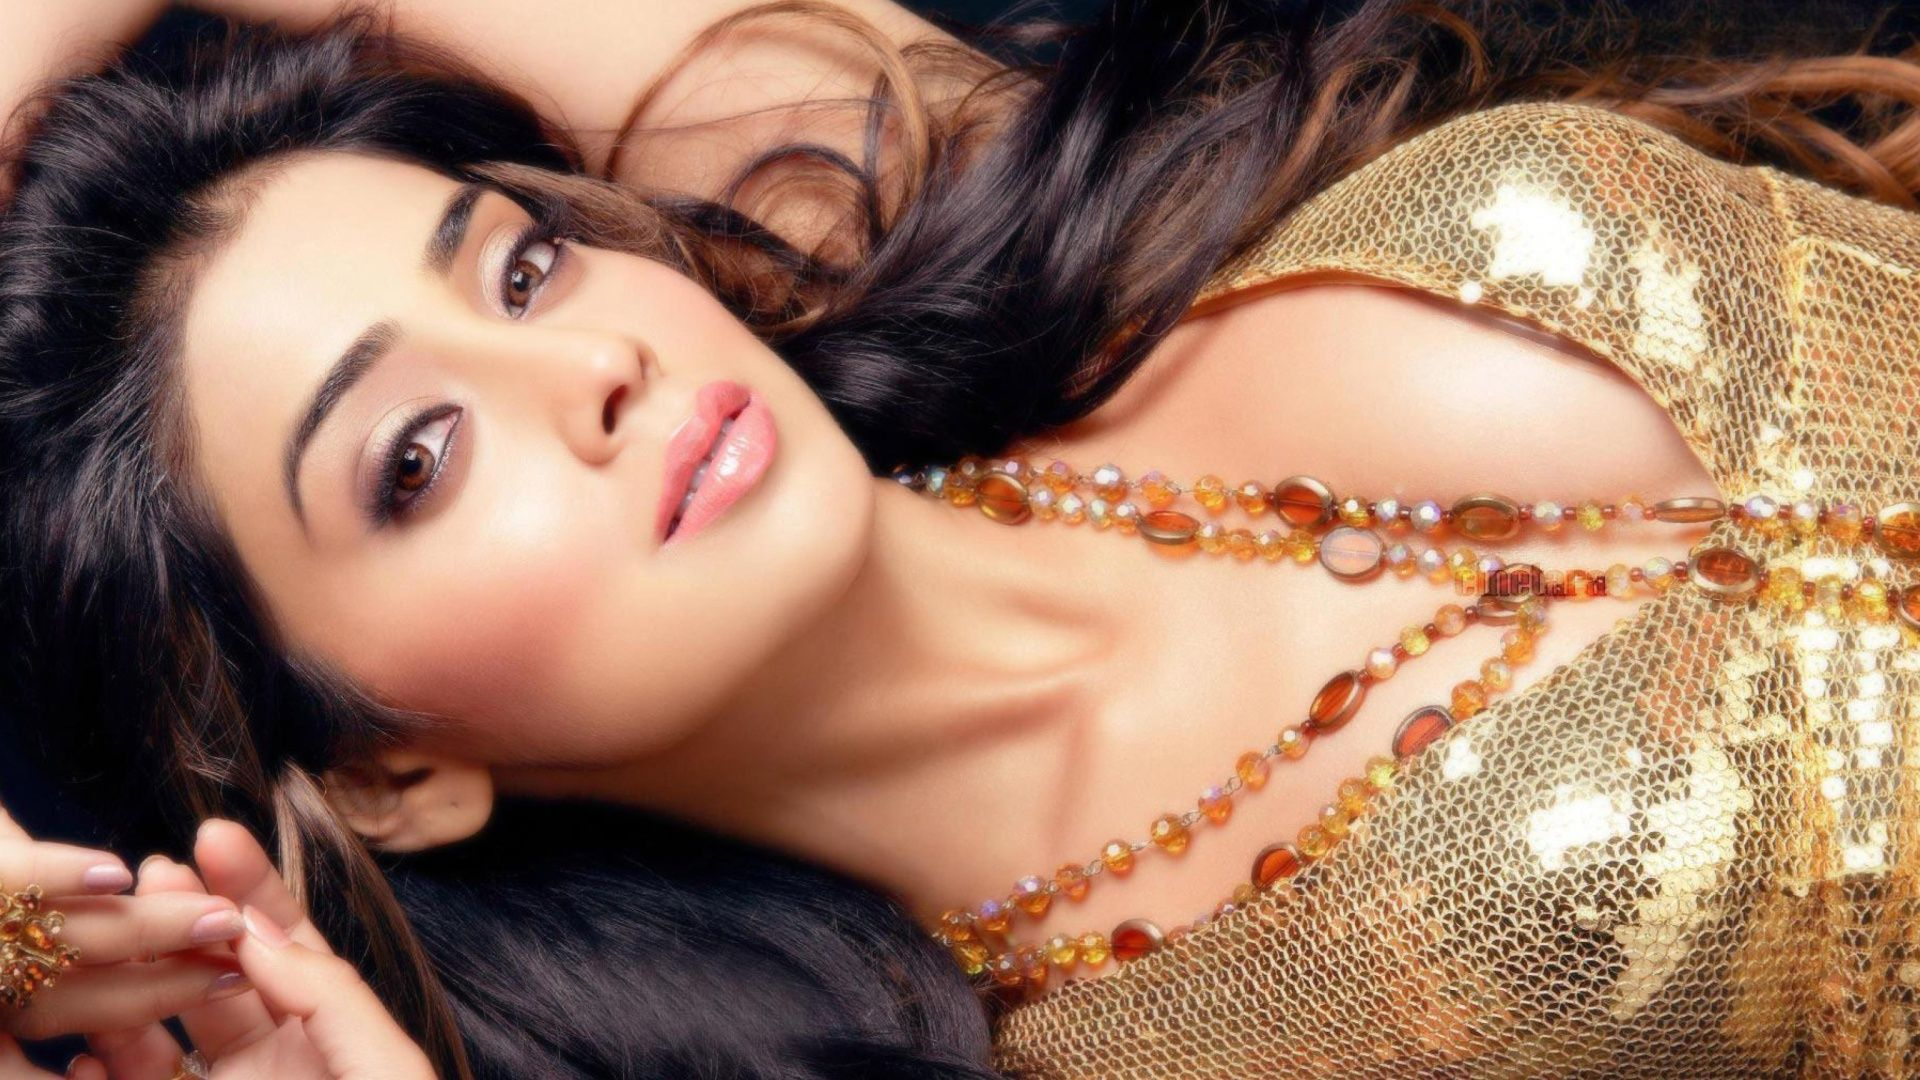 Telugu Actors Hd Wallpapers 53 Wallpapers: Shriya Saran Hot HD Wallpapers 2015